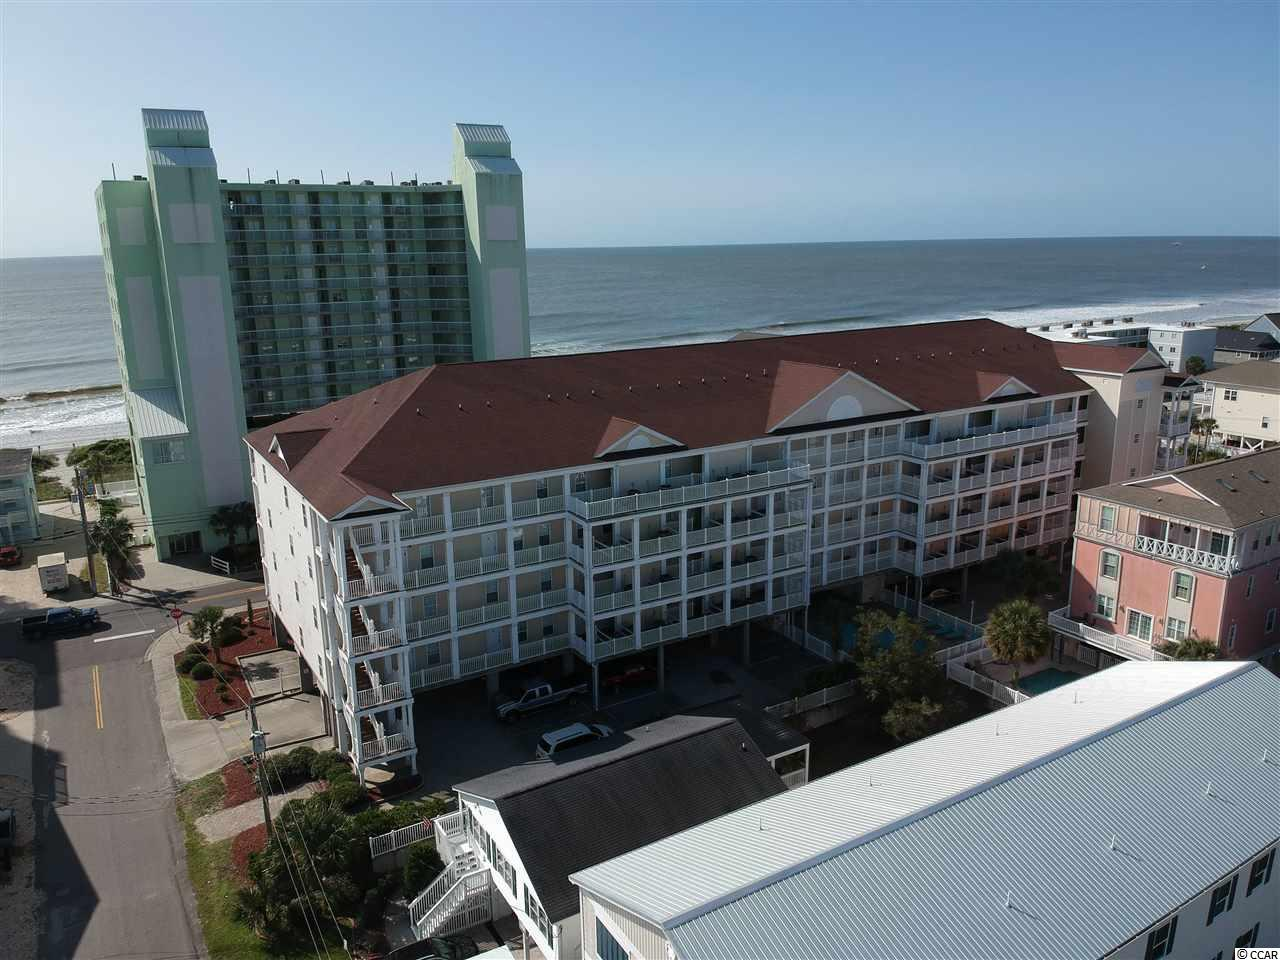 You don't want to miss out on this two-story, over 3000 sq. ft. turnkey condo with ocean views located second row in the family-friendly Cherry Grove section of North Myrtle Beach! Perfect for a second home, primary residence, or investment property. The property is fully-furnished with five bedrooms and five full bathrooms. This unit is open and spacious with large balconies off the main living area and the top floor two master bedrooms. Enjoy one main floor bedroom with an ensuite bathroom with a jet tub and a separate walk-in shower. The kitchen features granite countertops, a large work island with bar seating, two stainless steel refrigerators. One master bedroom has an ensuite bathroom with a jet tub and a separate walk-in shower. At the top of the stairs, enjoy another living area/game room. Owners are allowed pets, golf carts, and motorcycles. The property features a large outdoor pool, hot tub, picnic area with charcoal grills. Walk right across the street to the beach or a short walk to the Cherry Grove Park &  Boat Ramp and the Heritage Shores Nature Preserve. Close to all the entertainment, North Myrtle Beach has to offer.